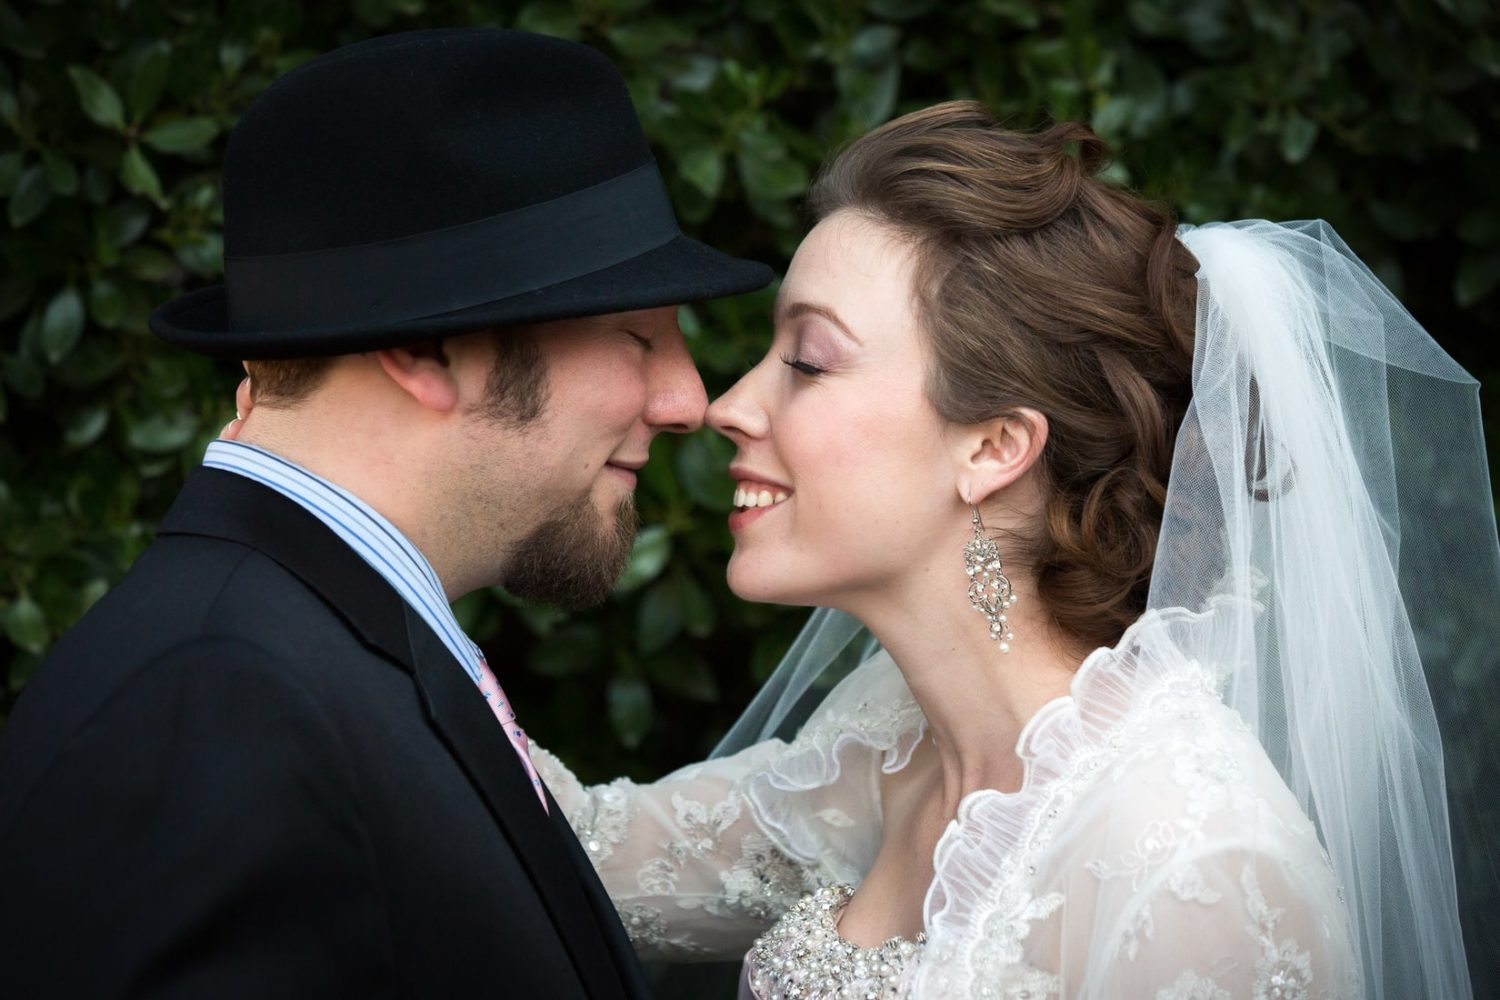 Bride and Groom touch noses lovingly on their wedding day - Congregation Beth Israel - Berkeley Wedding